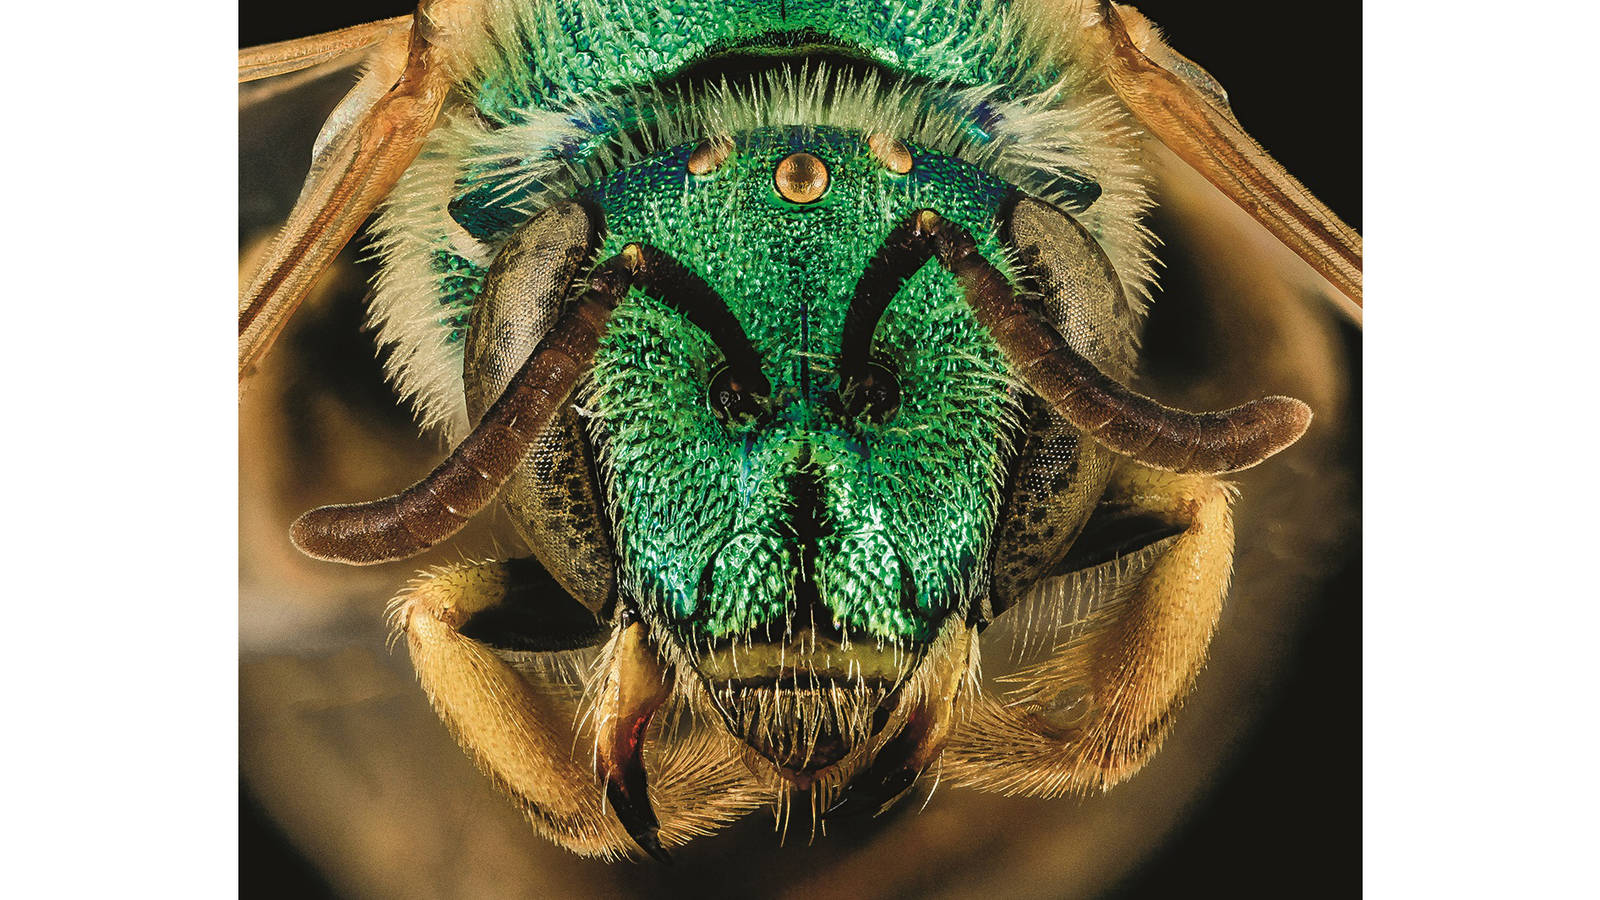 """<h3 style=""""text-align: center; padding: 50px;""""><span class=""""text-Intro-style""""><em>Agapostemon melliventris</em> (bee), Badlands National Park, South Dakota. © SAM DROEGE/USGS BEE INVENTORY AND MONITORING LAB</span></h3>"""